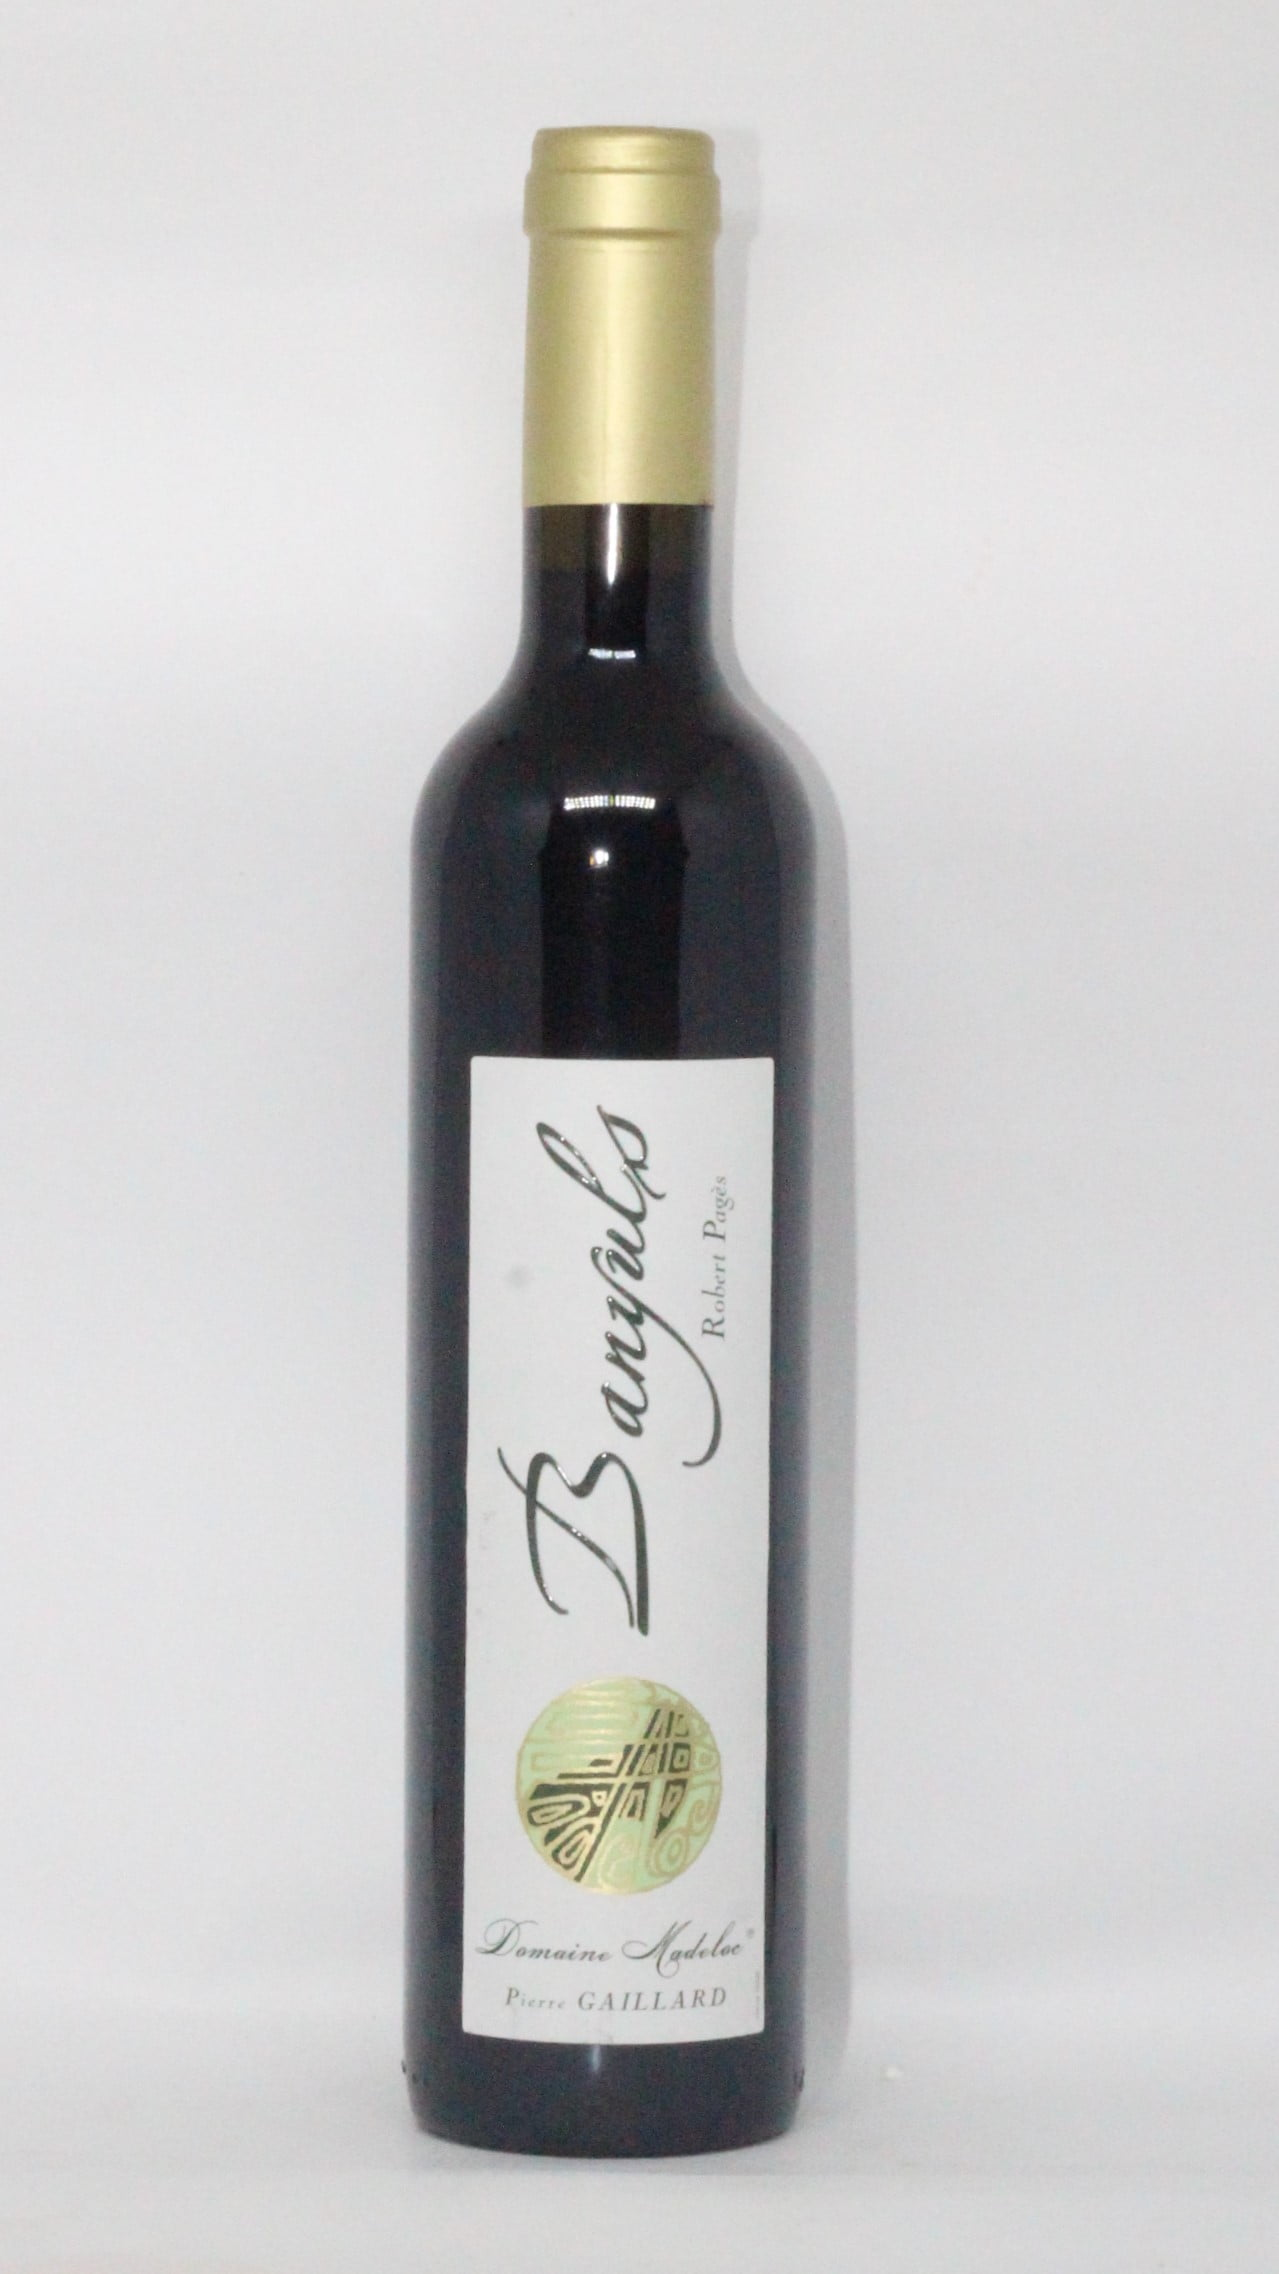 VINHO TINTO FORTIFICADO BANYULS ROUGE ROBERT PAGES